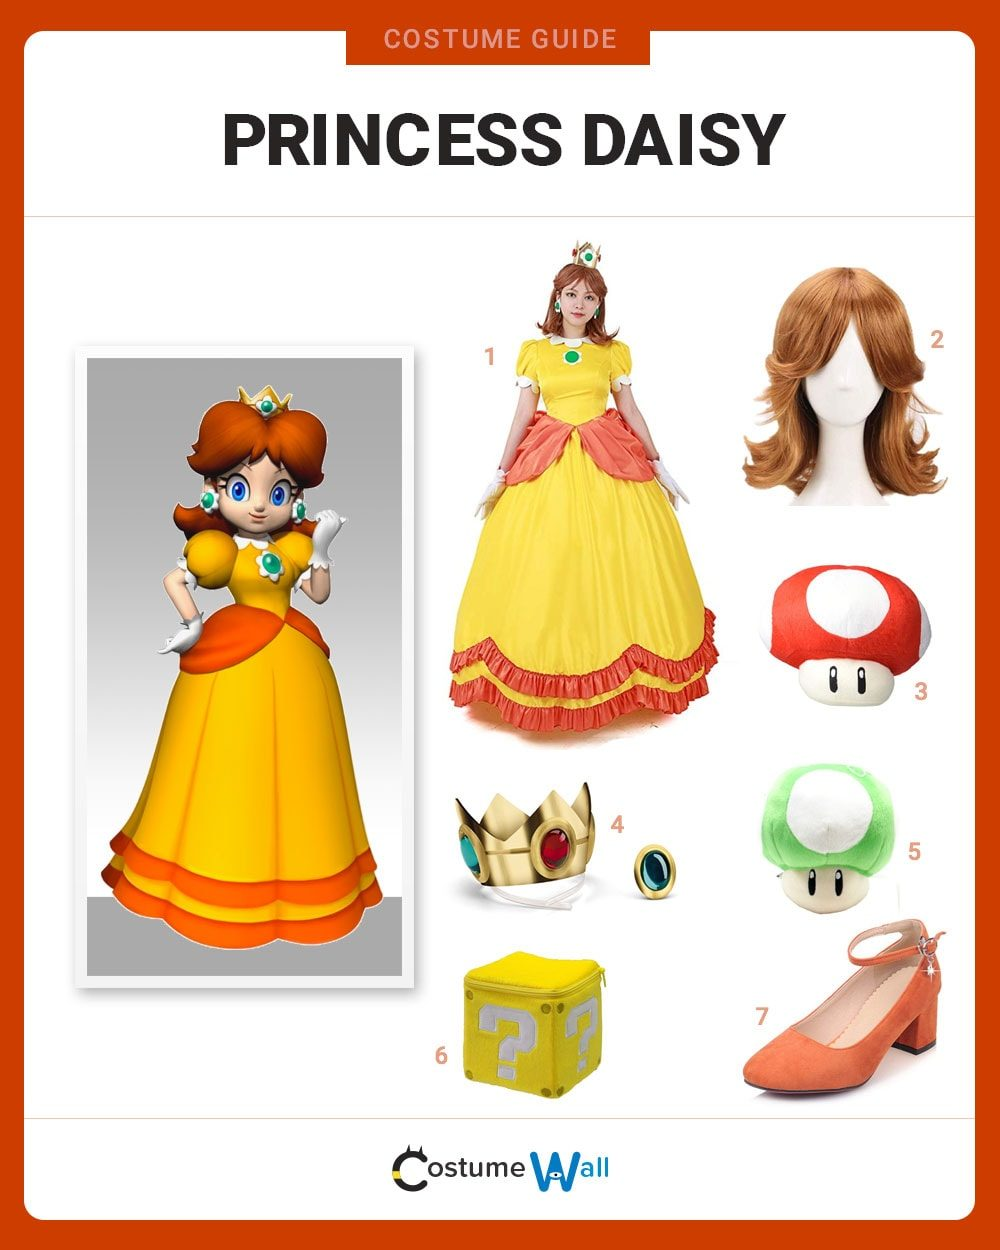 Princess Daisy Costume Guide